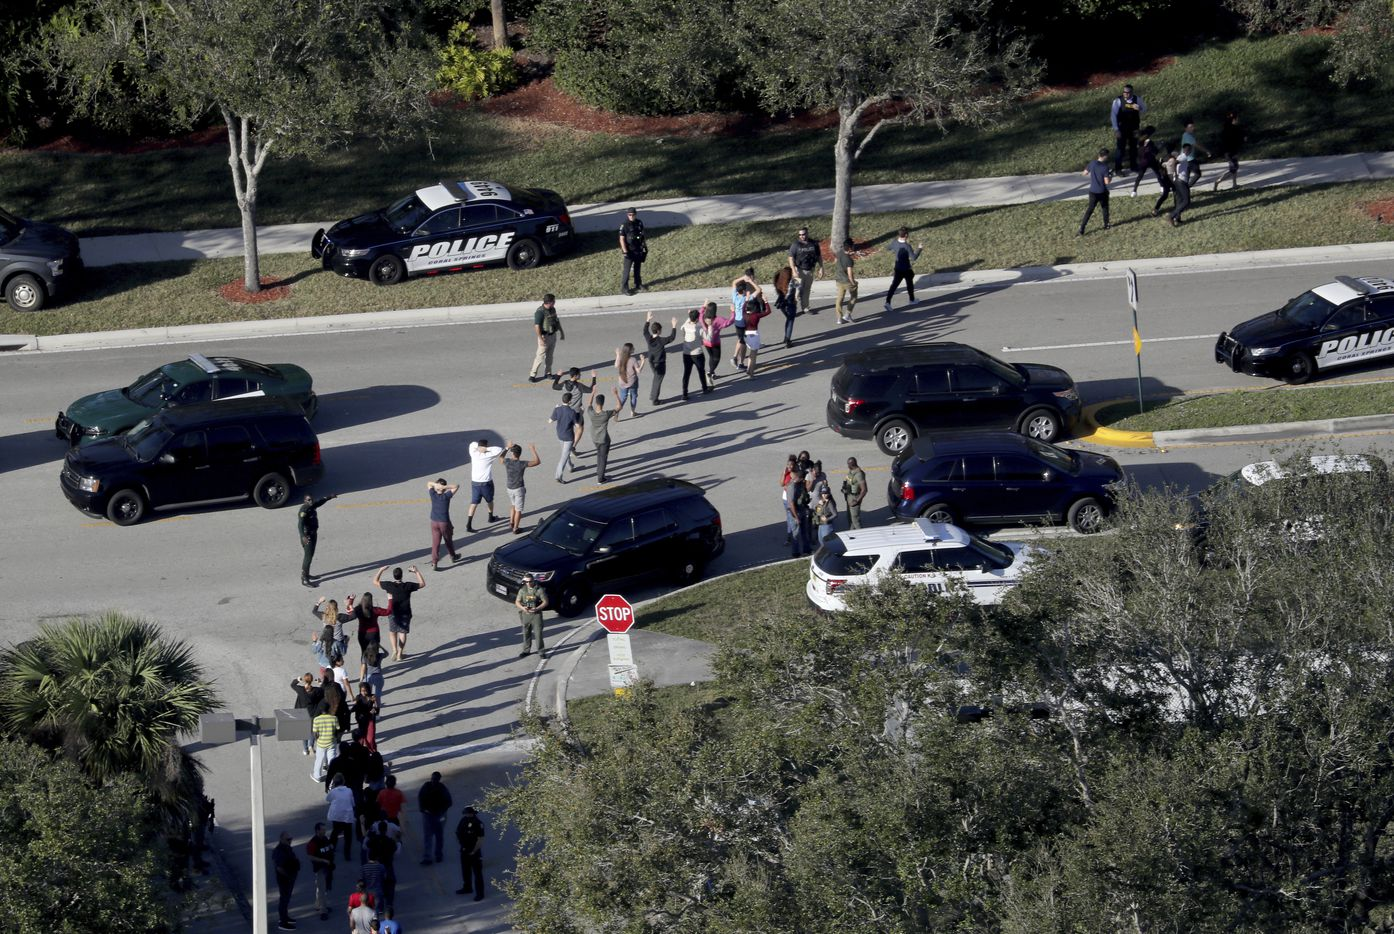 Students hold their hands in the air as they are evacuated by police from Marjory Stoneman Douglas High School in Parkland, Fla., on Wednesday, Feb. 14, 2018, after a shooter opened fire on the campus.